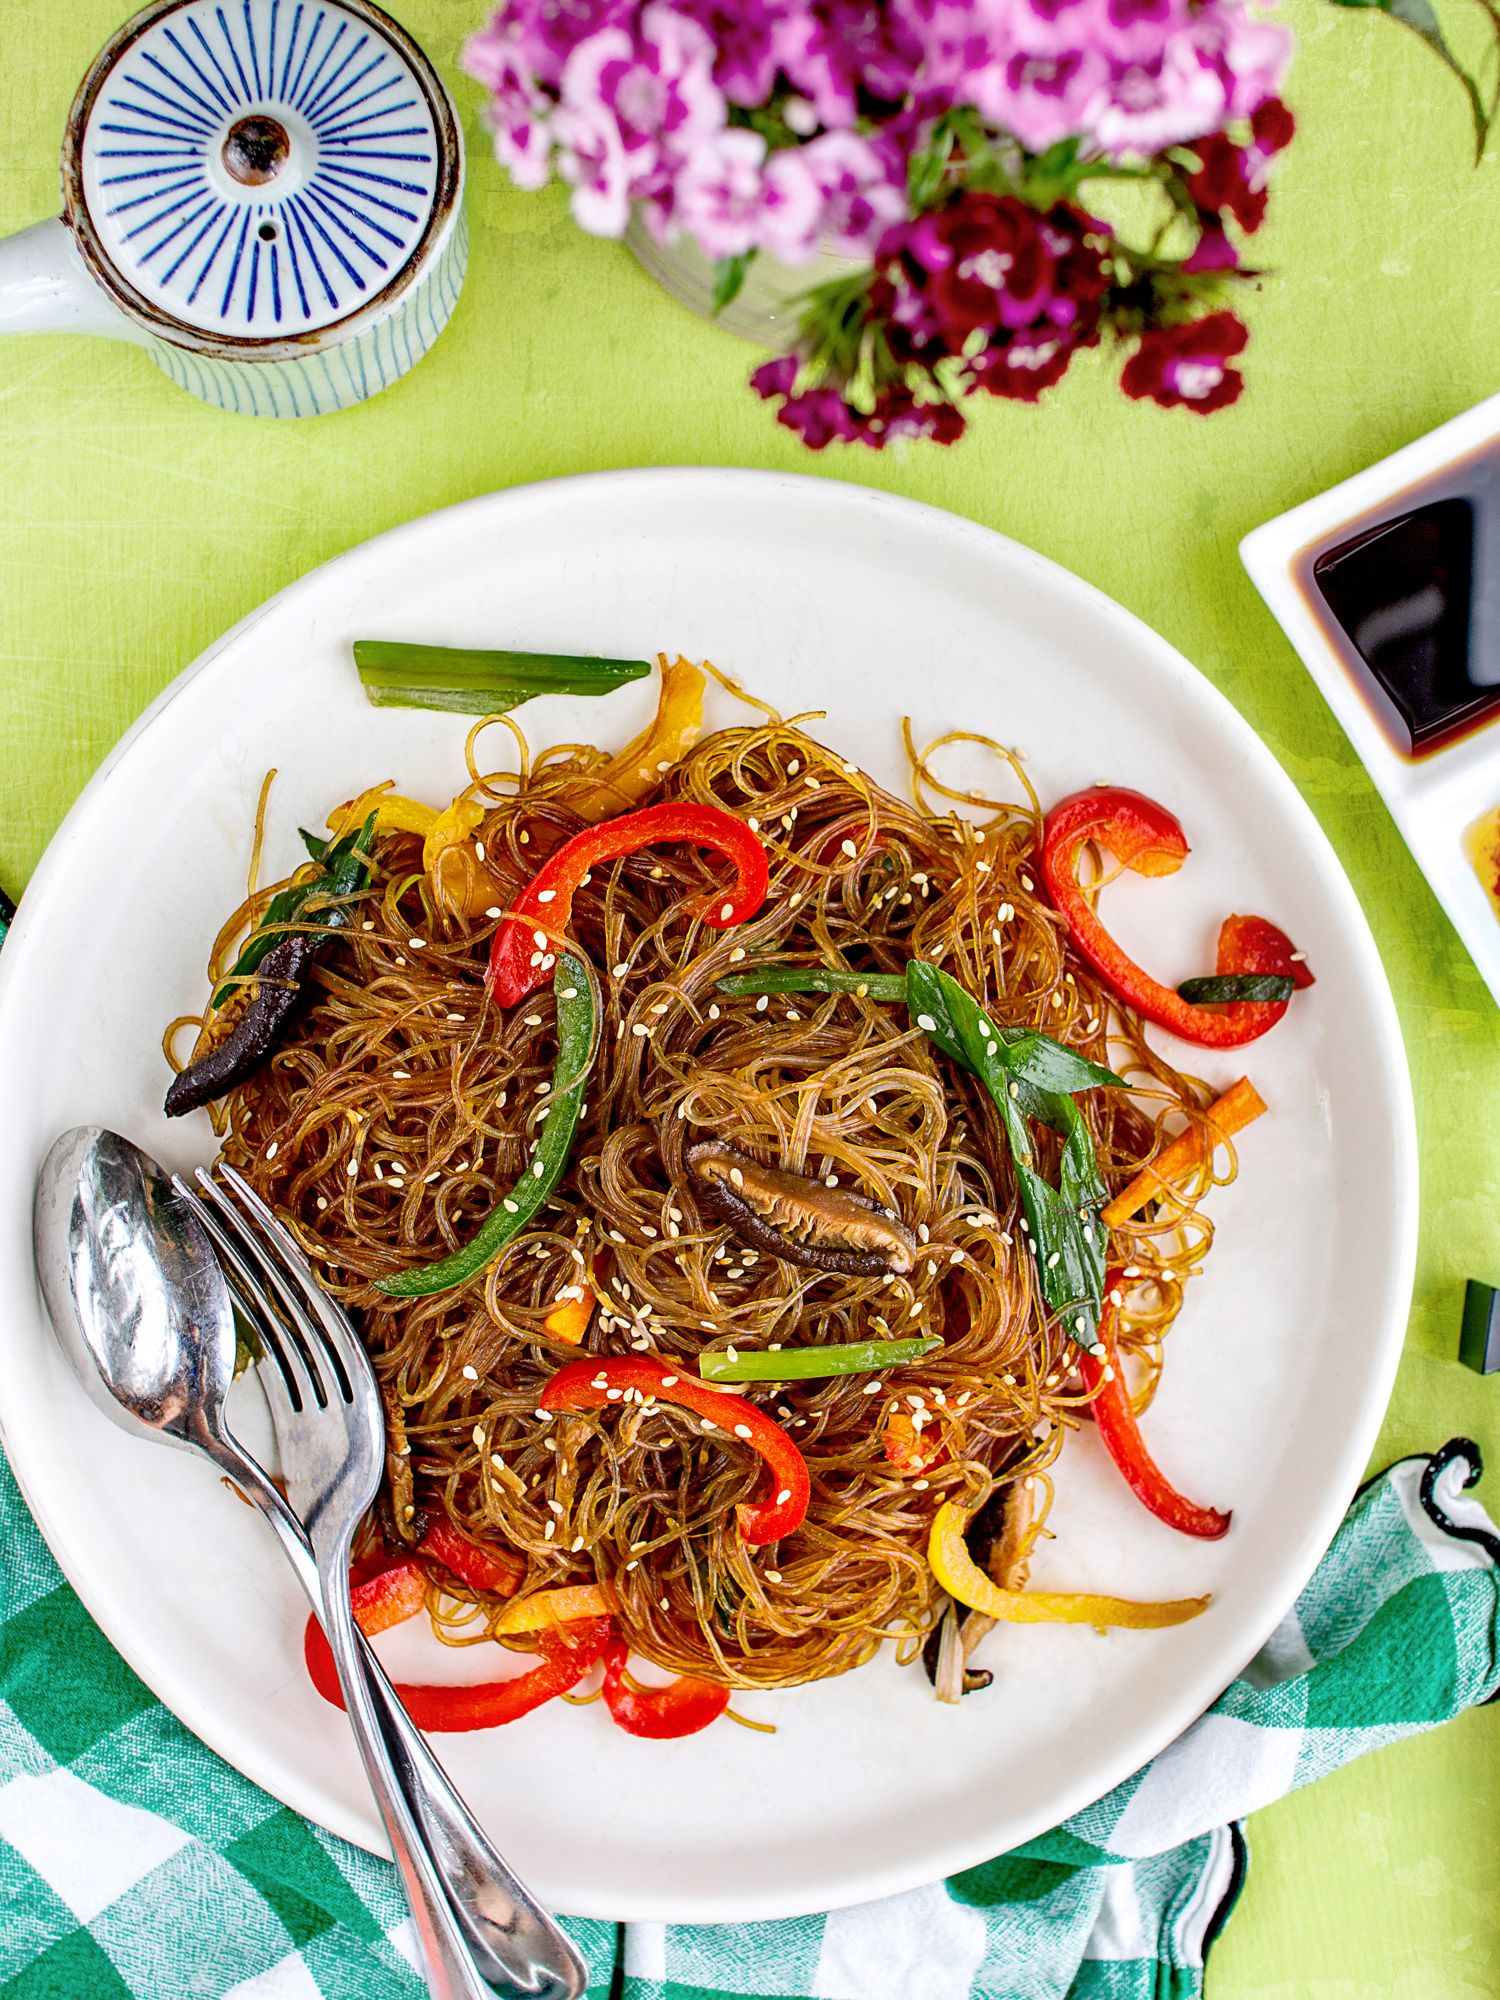 Stir-fried Glass Noodles with Mushrooms and Peppers